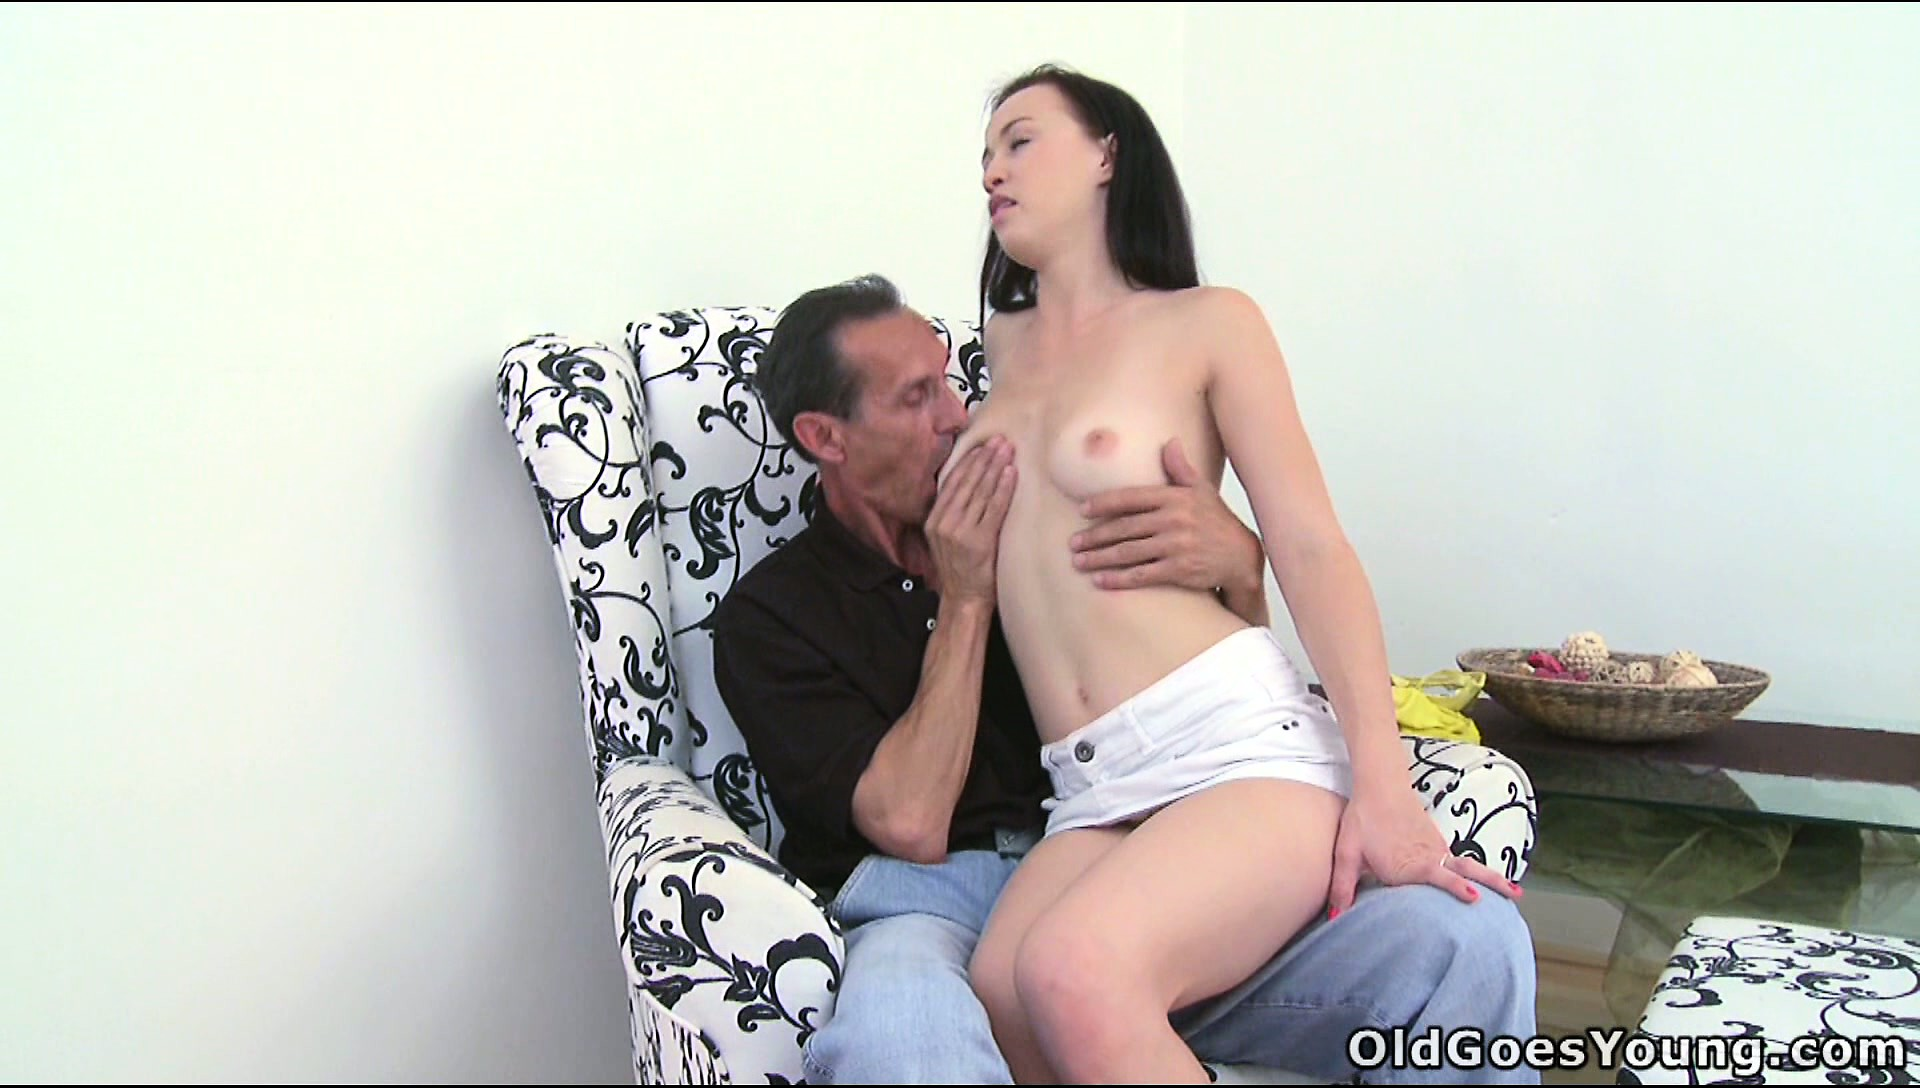 Sex Movie of Teen Sits On A Raunchy Grandpa's Lap And Gets Her Tits Sucked On